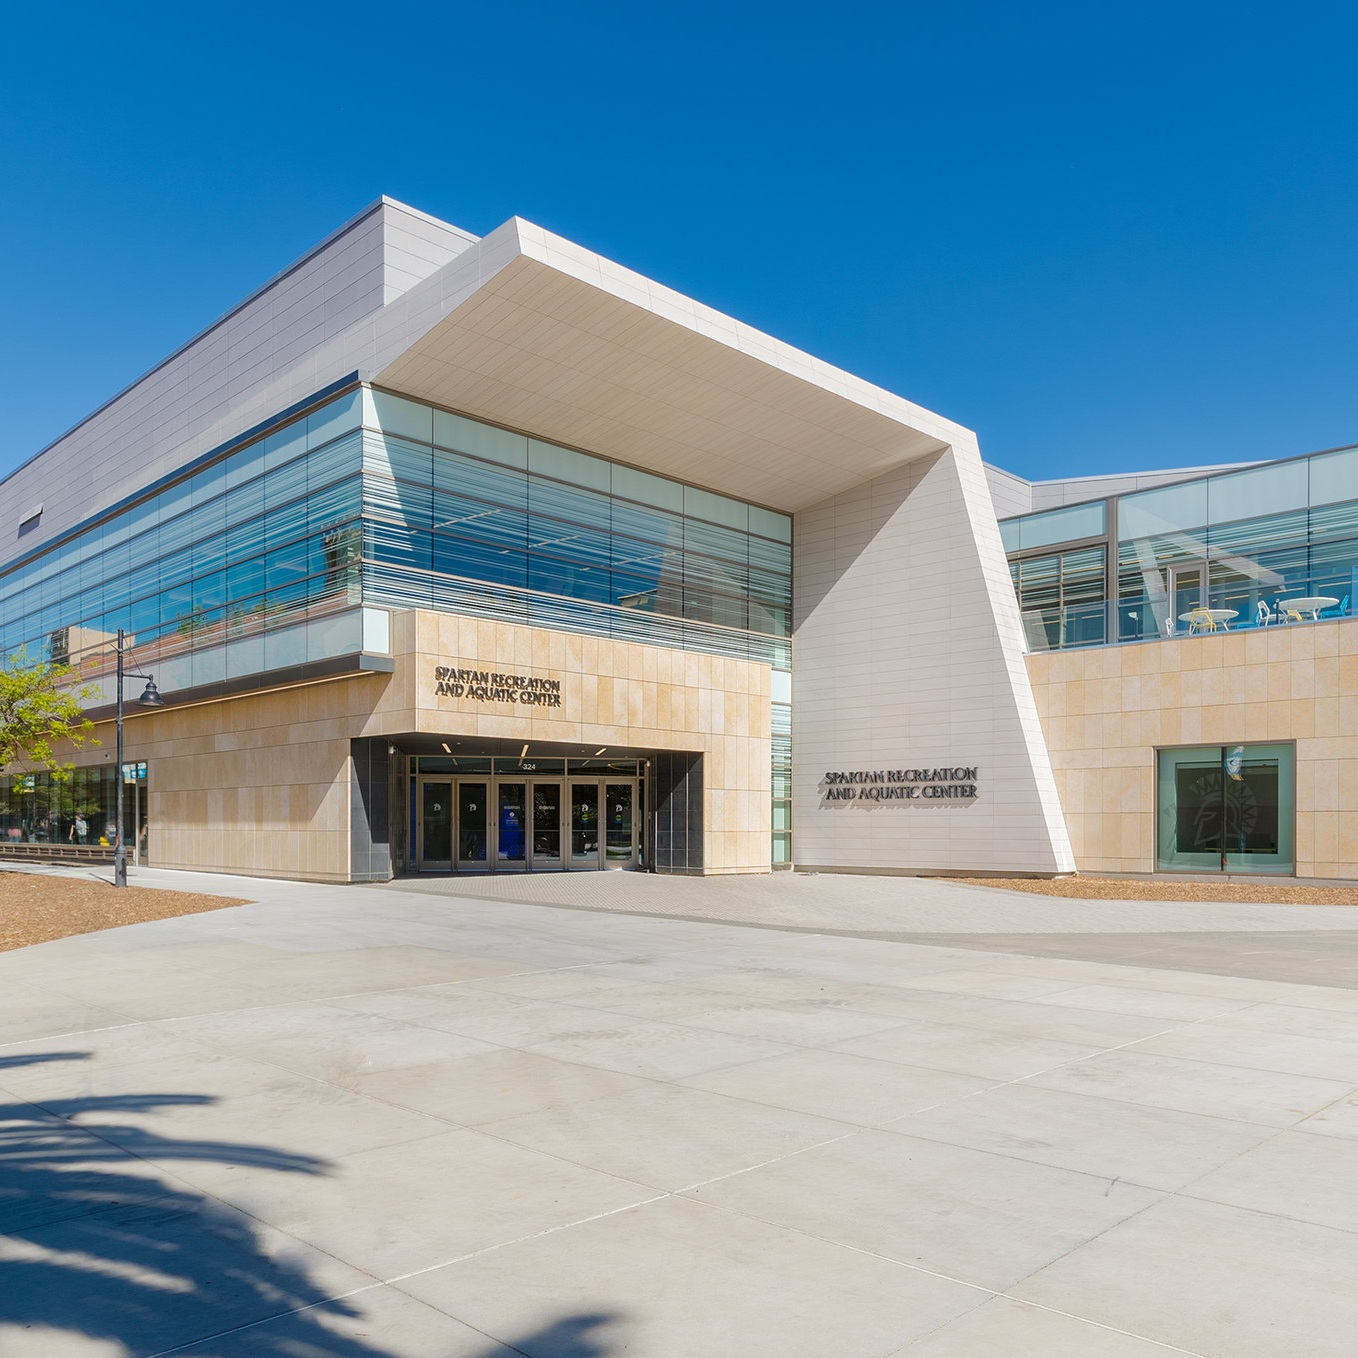 photo of the spartan recreation and aquatic center